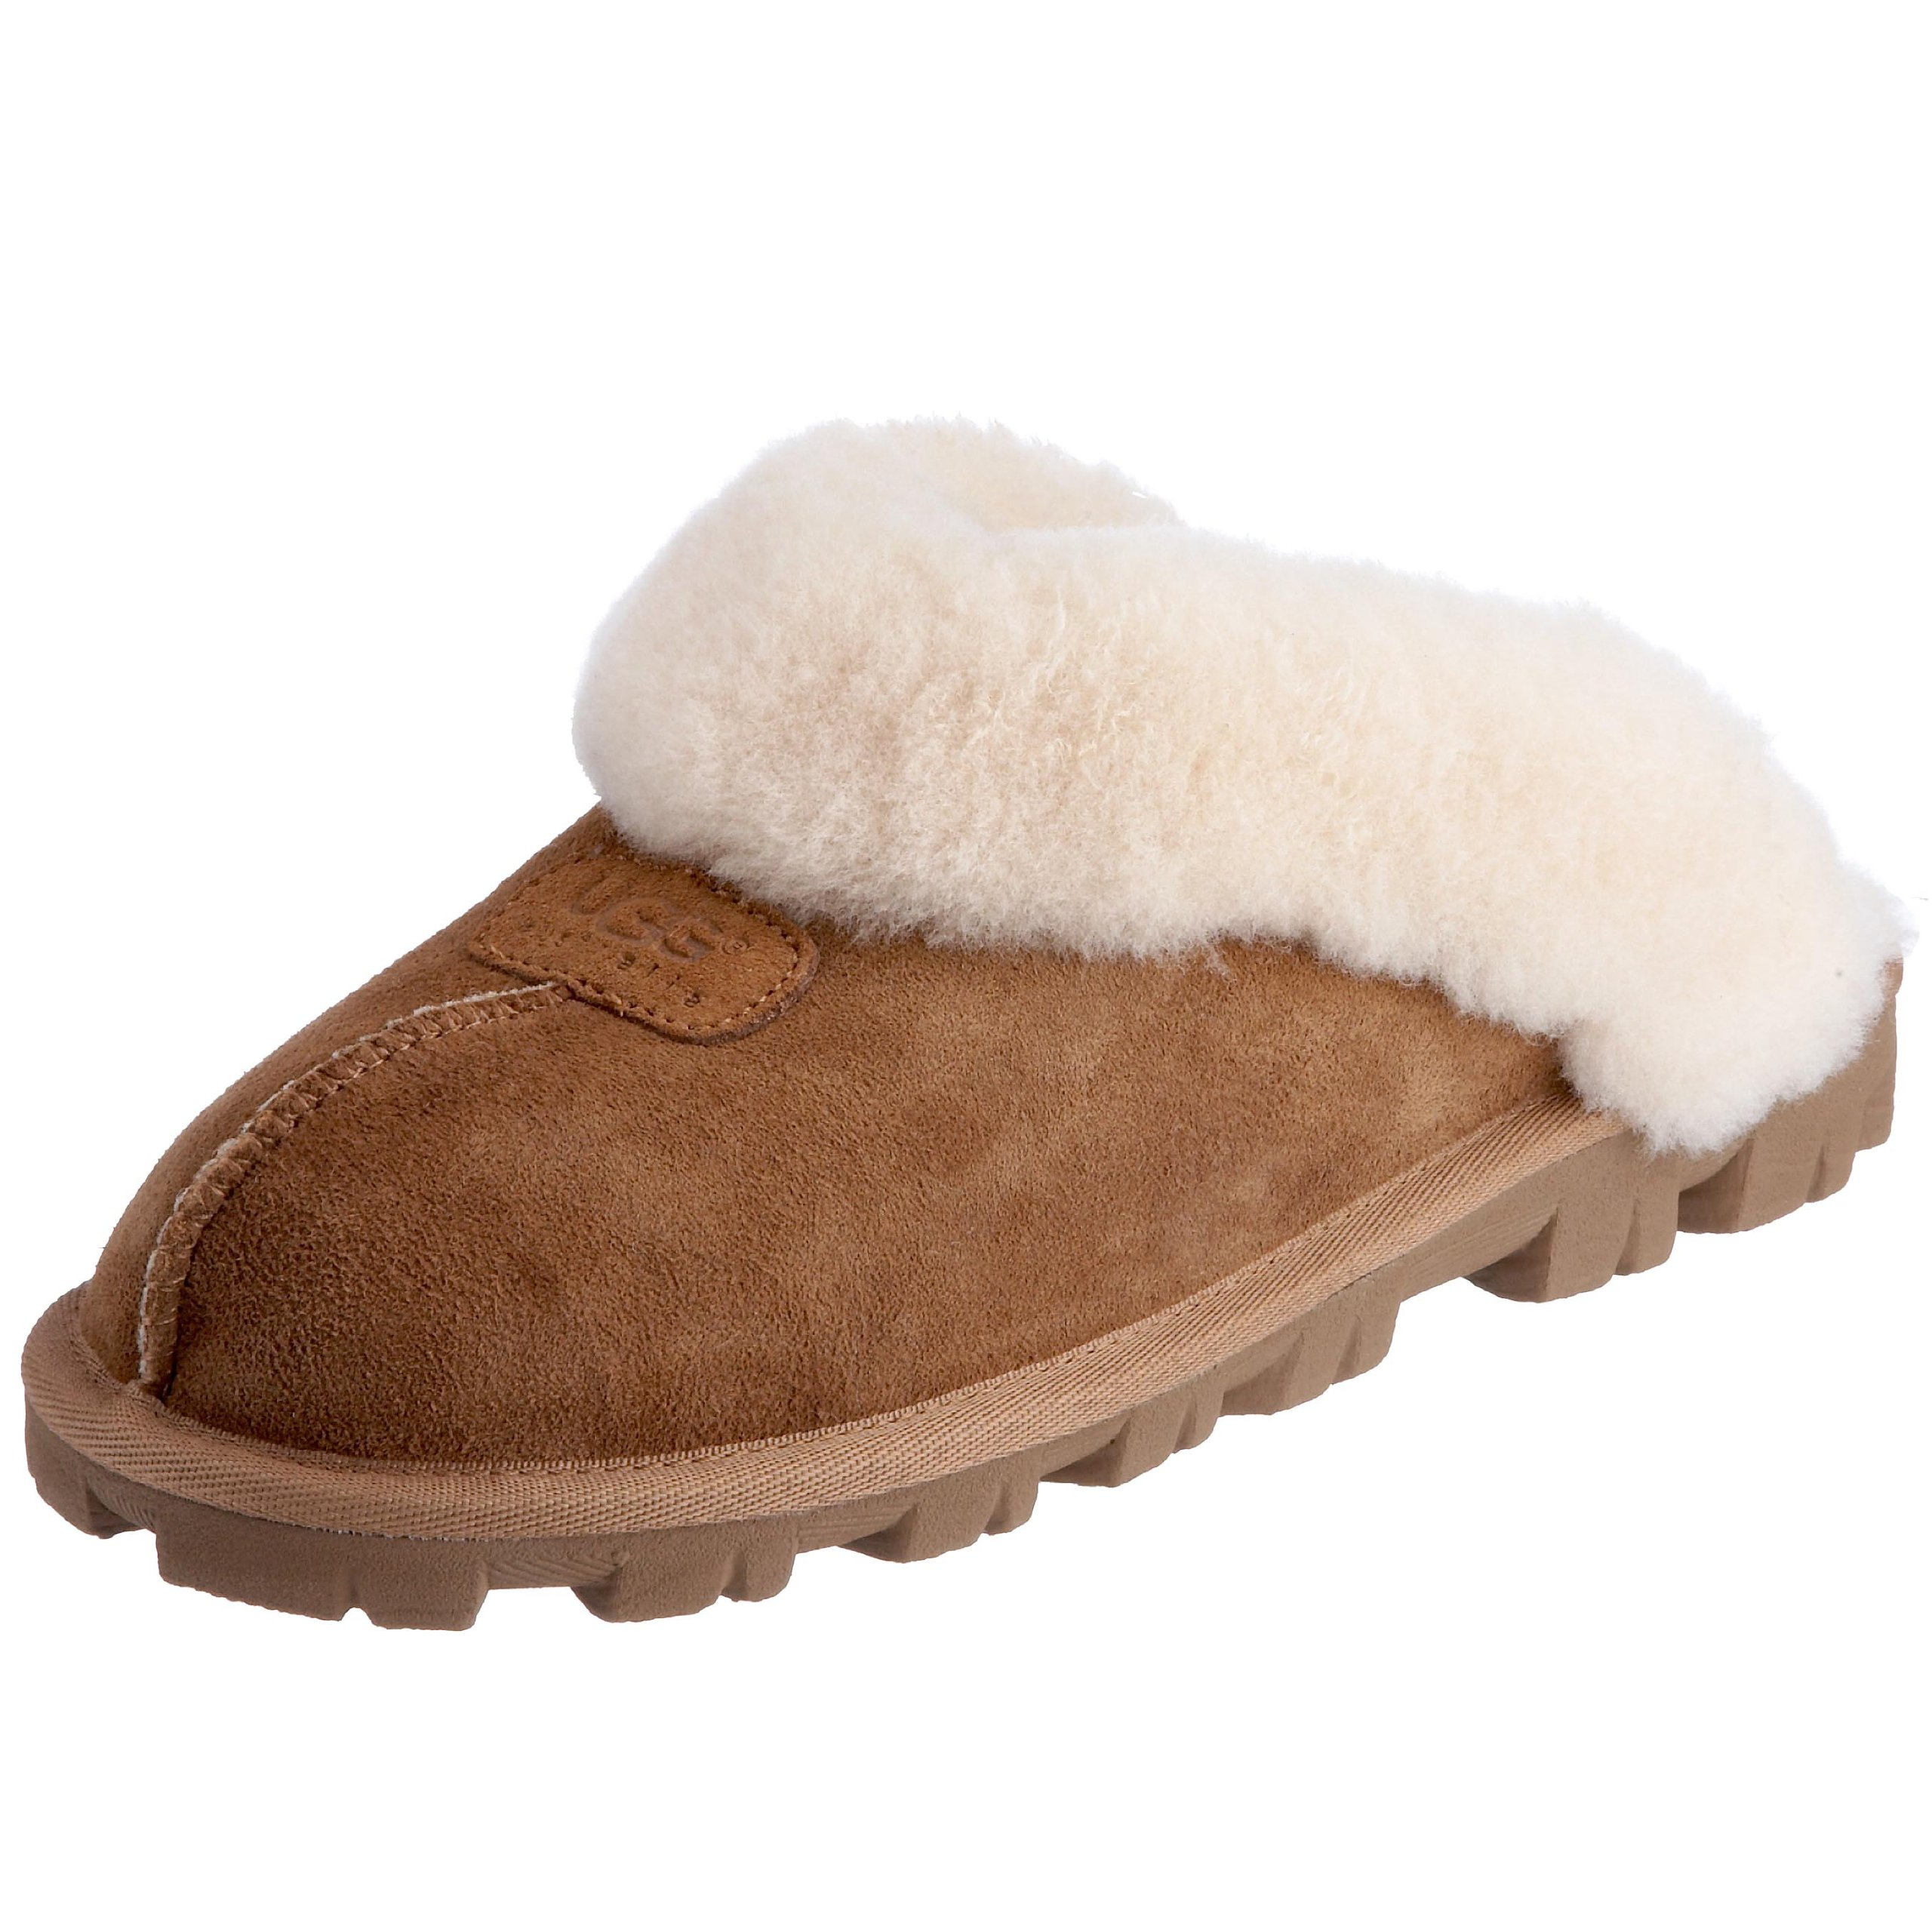 UGG Women's Coquette Chestnut Slipper - 10 B(M) US